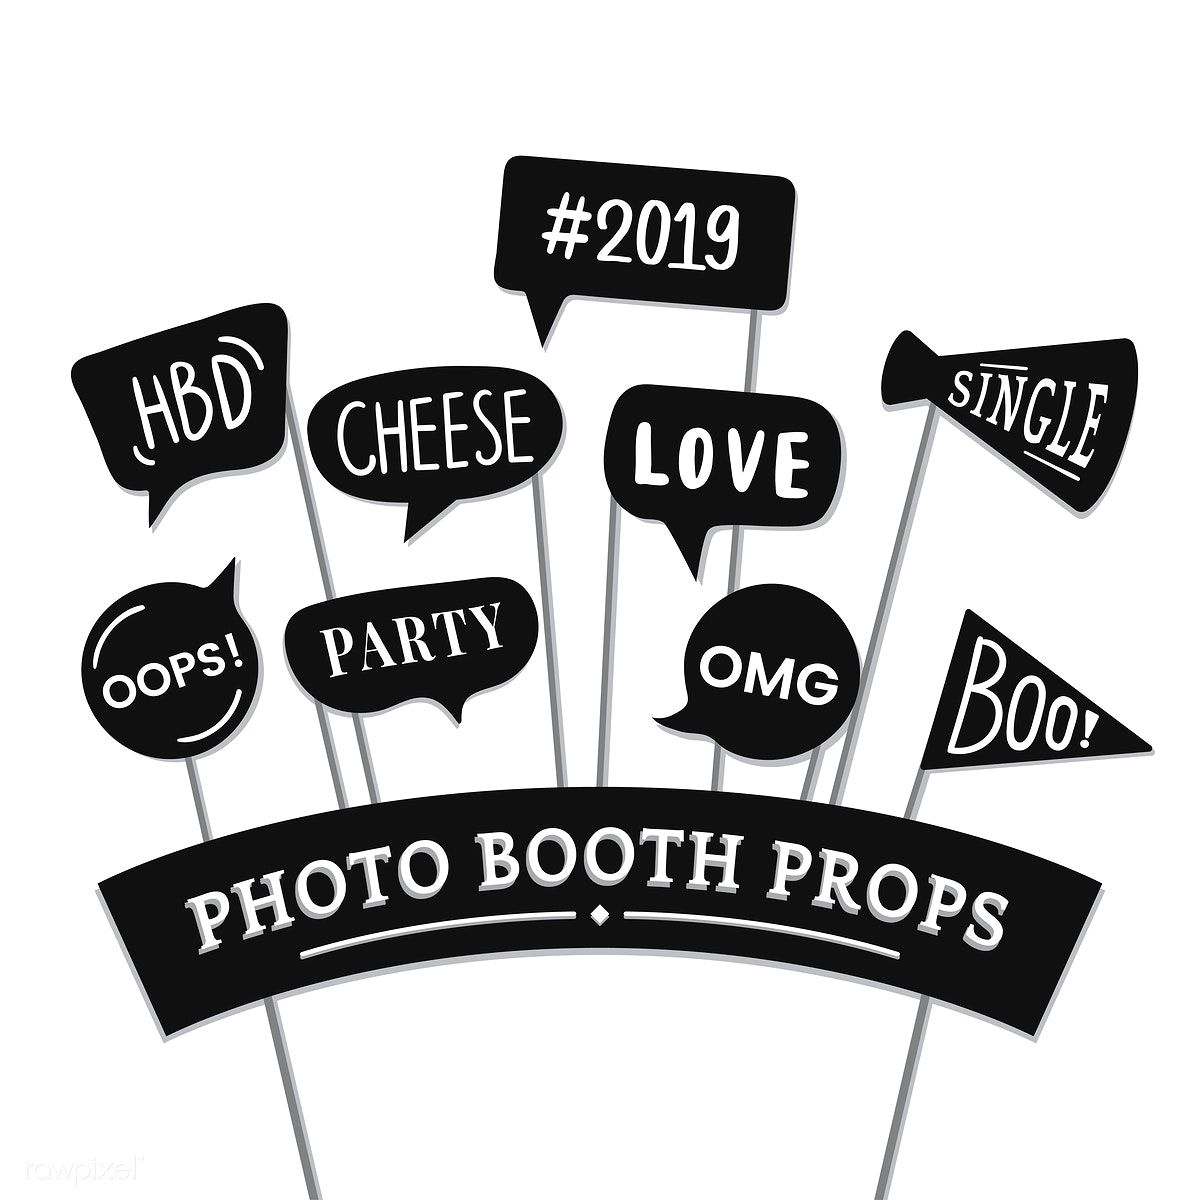 Word Expressions Set For Party Photo Booth Props Vector Free Image By Rawpixel Com Manotang Photo Booth Props Party Photo Booth Photo Booth Party Props